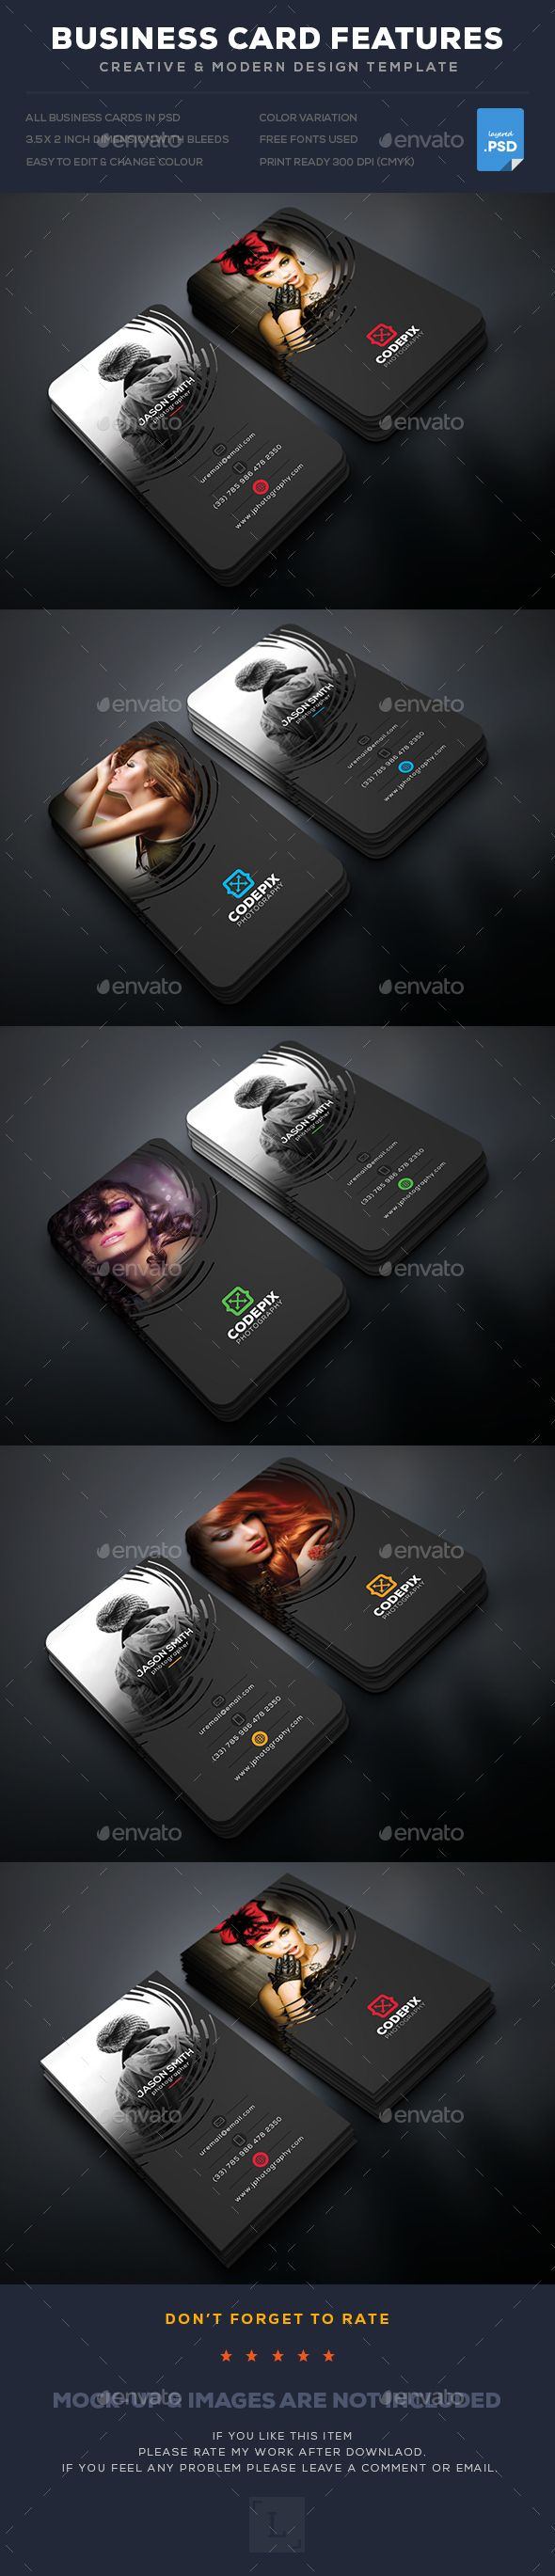 Photography Business Card - #Business Cards Print Templates Download Here:        https://graphicriver.net/item/photography-business-card/17843820?ref=suz_562geid